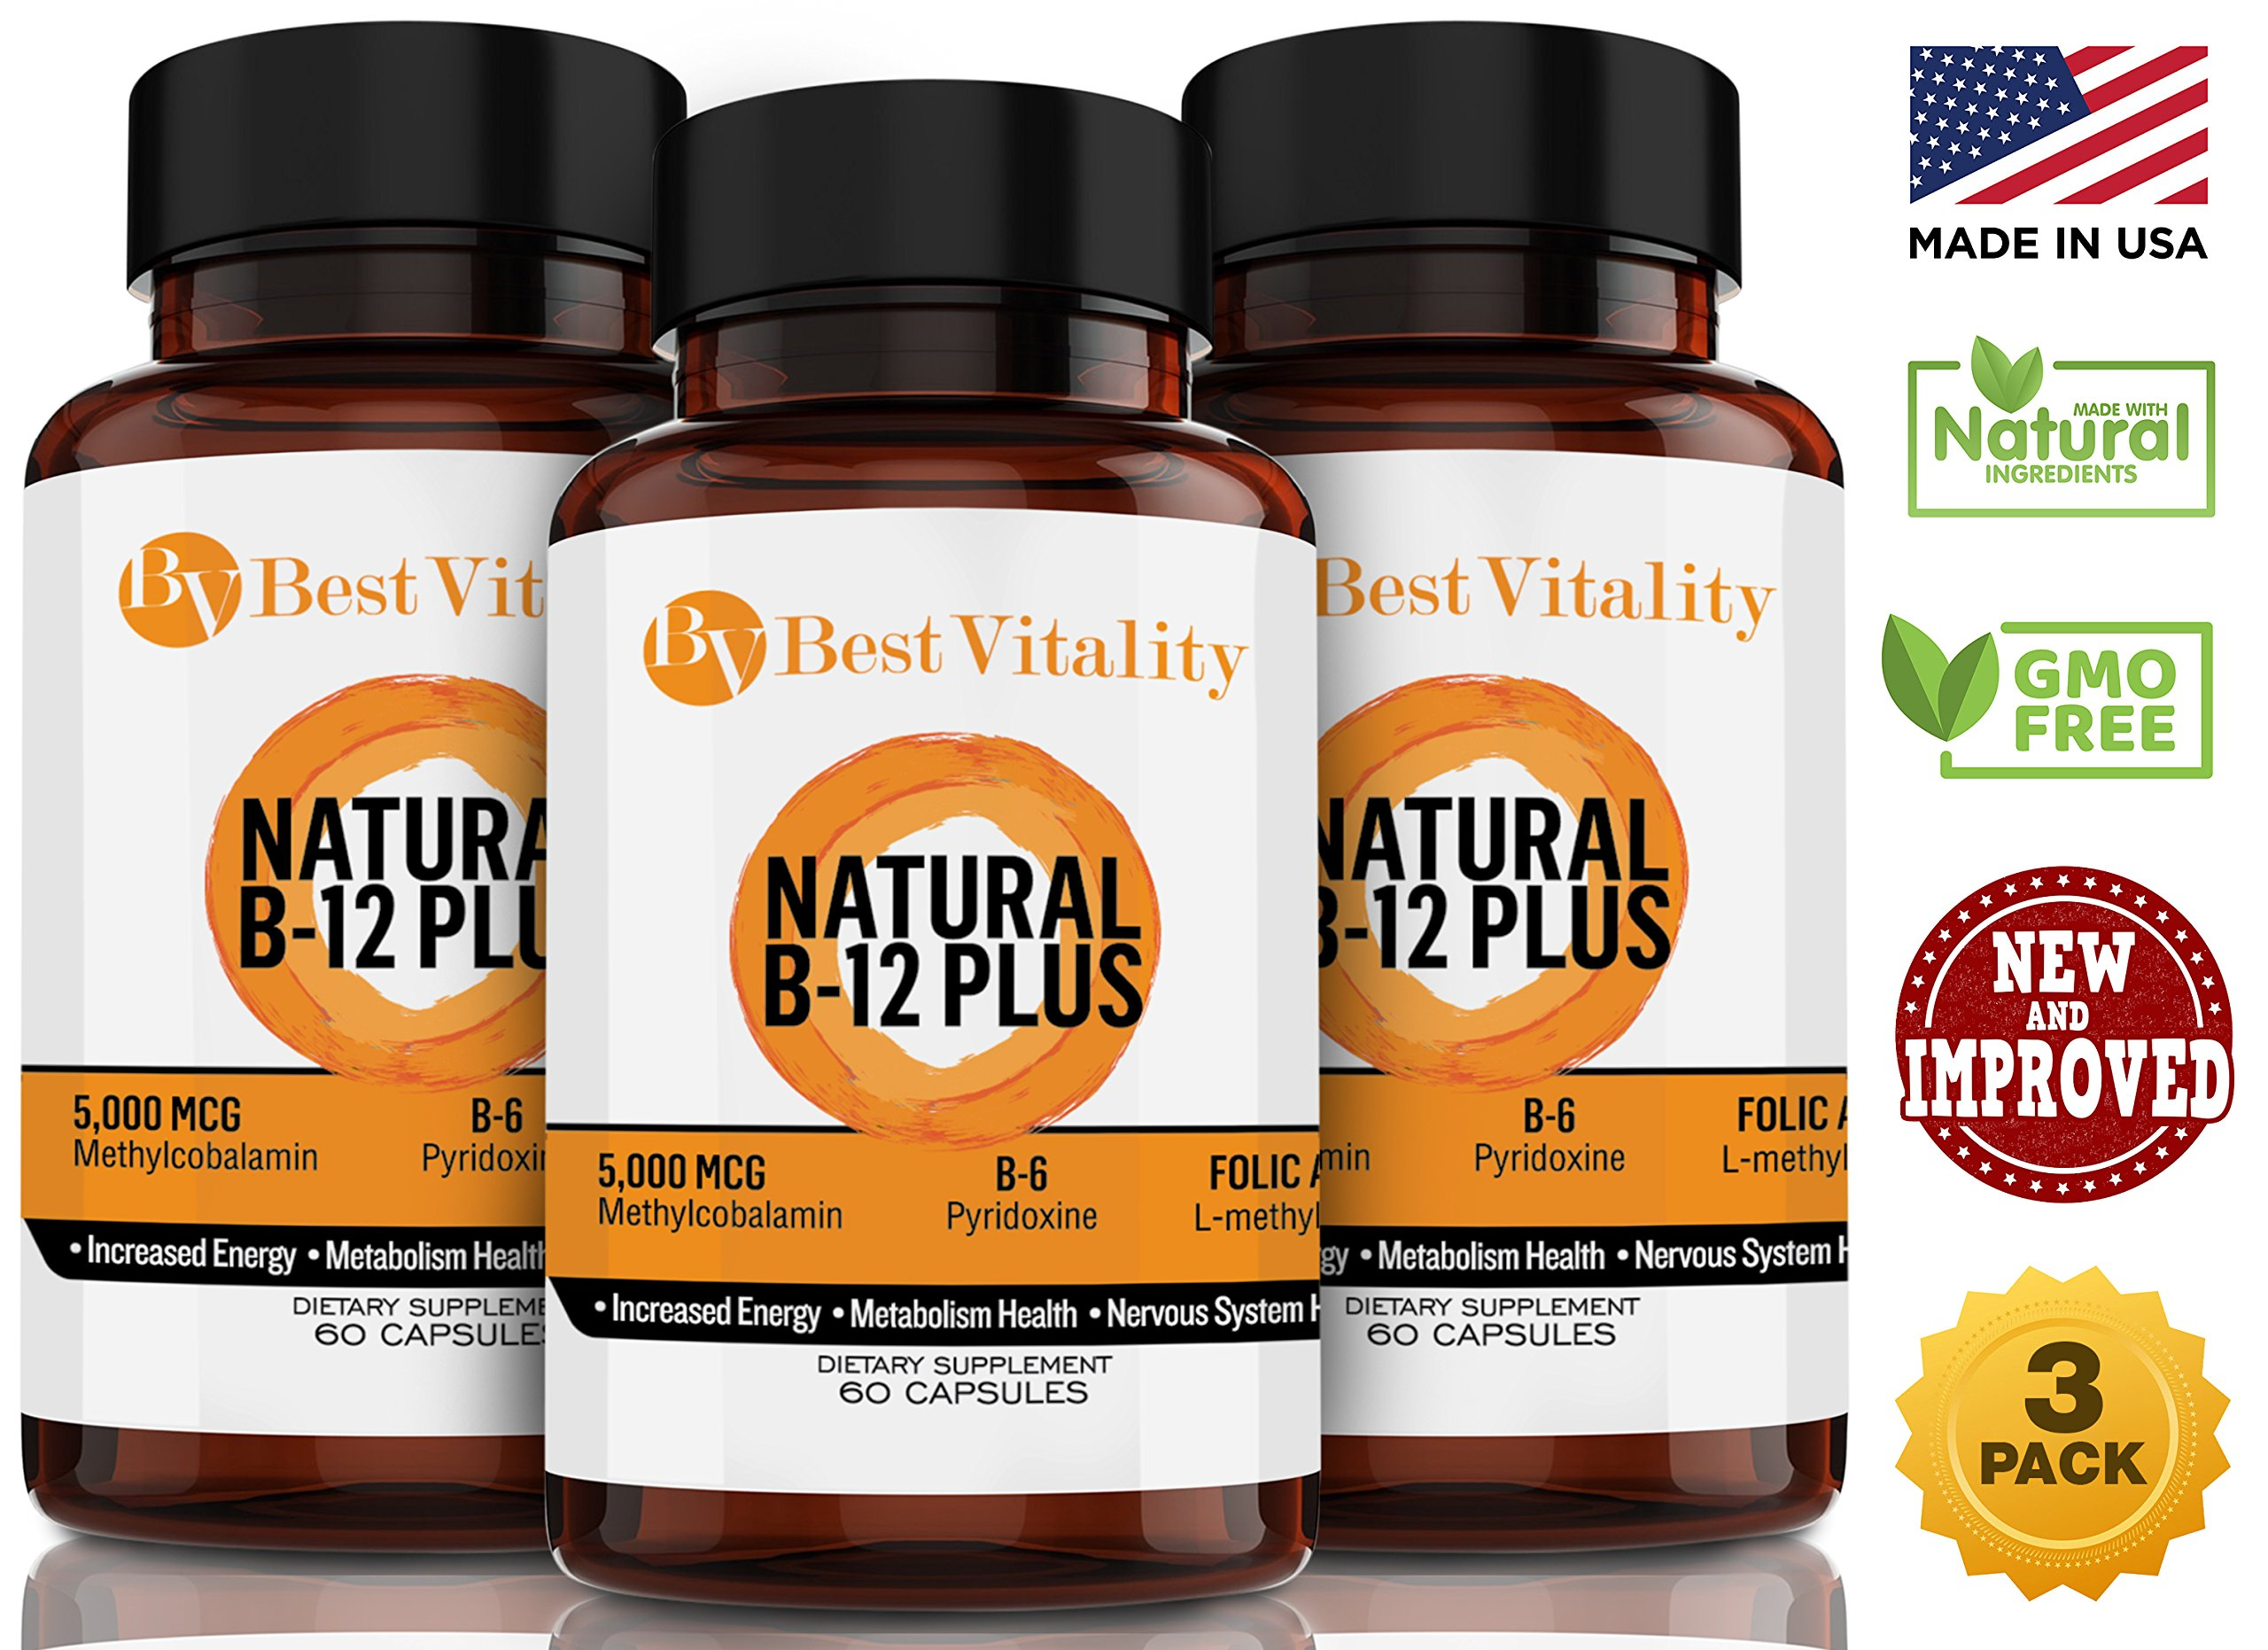 Best Vitality - Vegan Safe All Natural Vitamin B Complex B12 Methylcobalamin, B6 & Folic Acid - 60 Vegetarian Capsules. Three Pack Bundle (Best Value!!!) - Made In USA